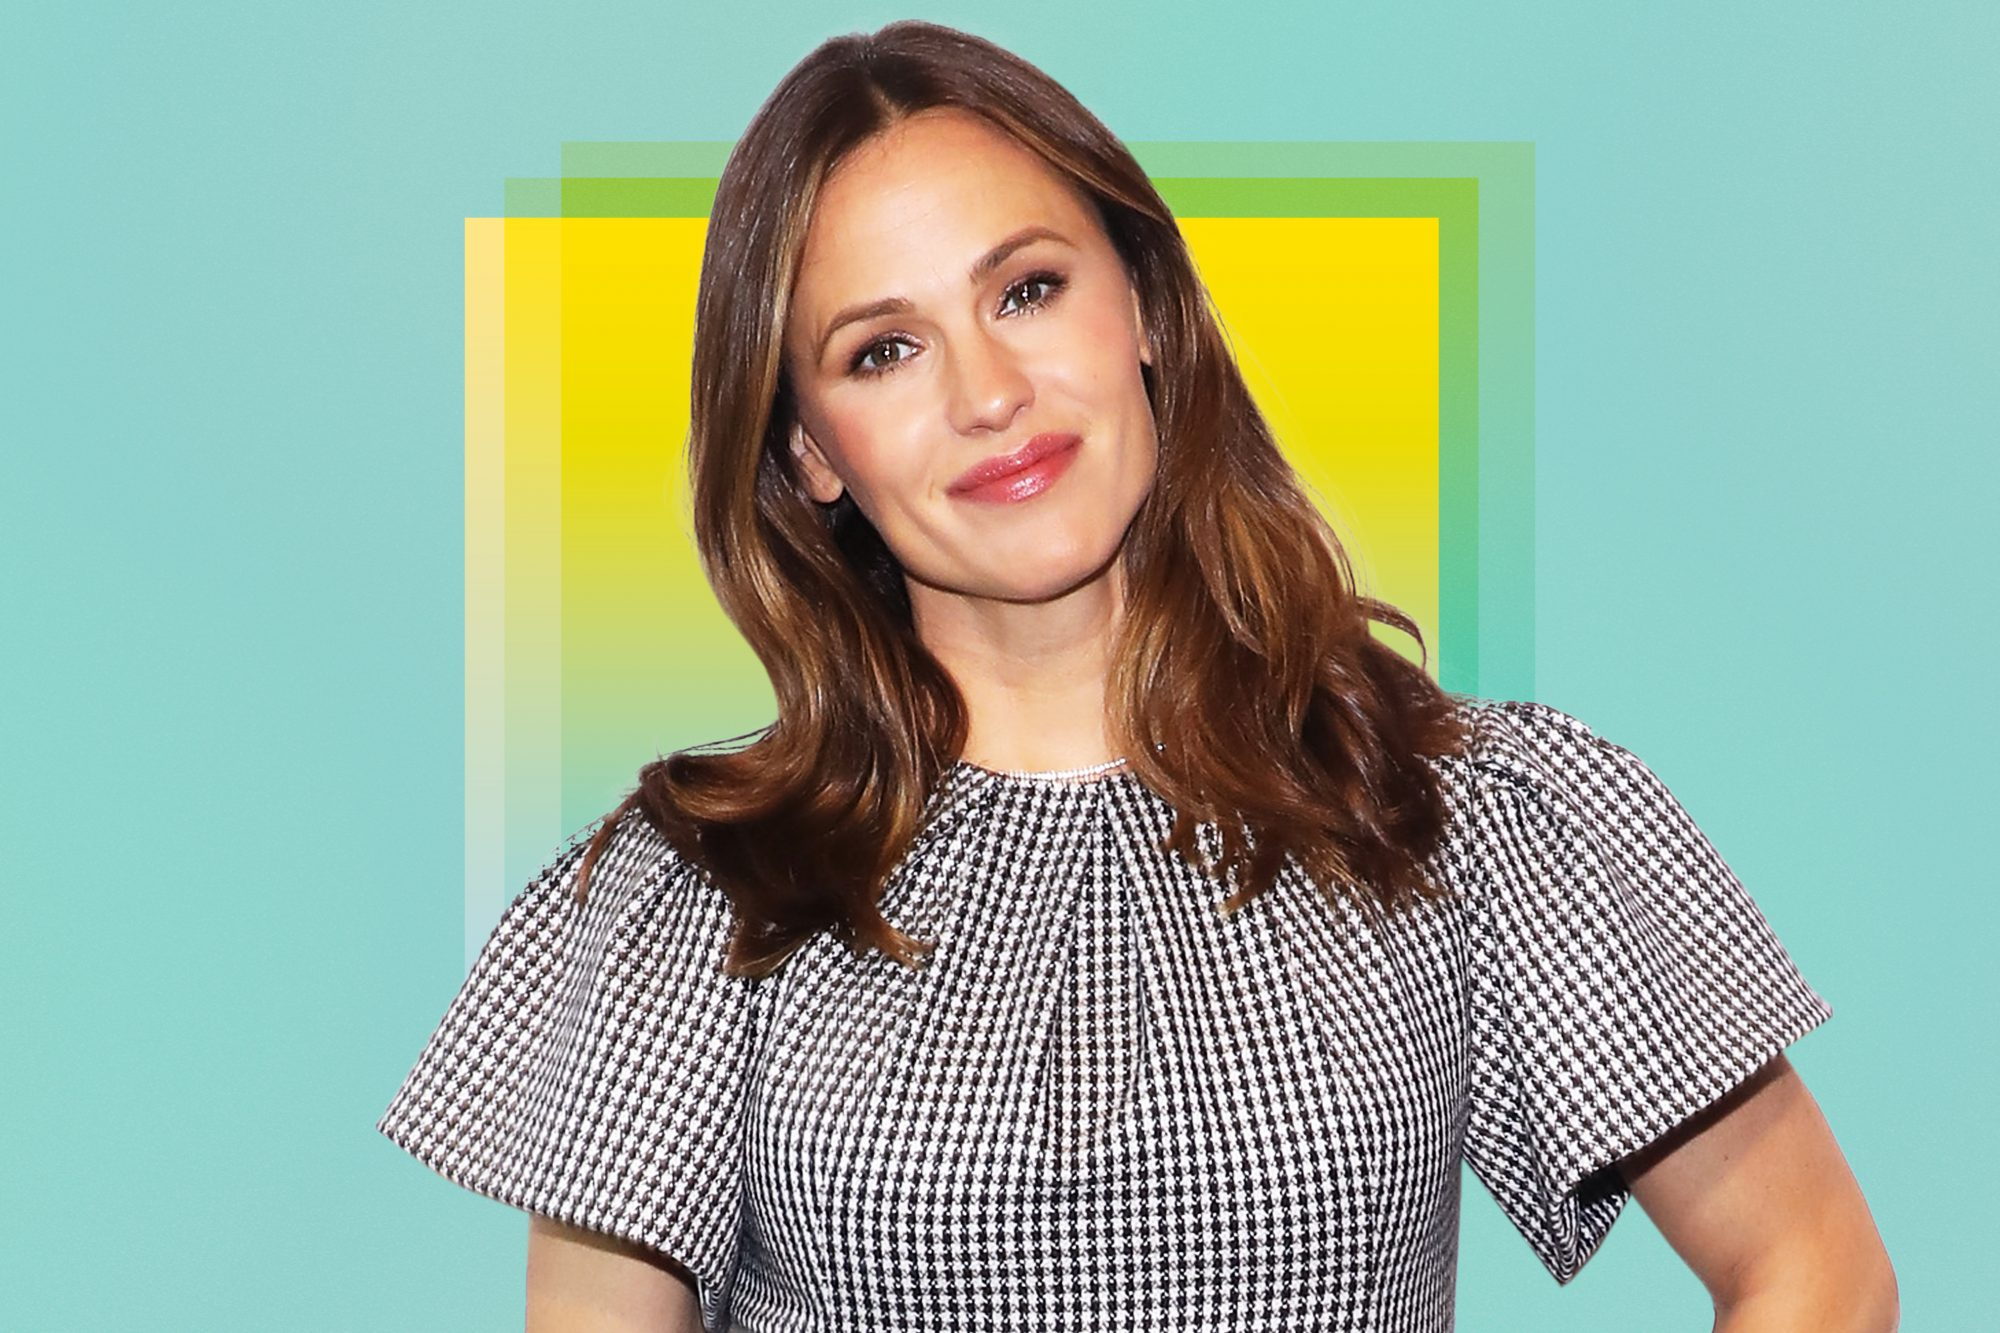 Jennifer-Garner-Keeps-Wearing-The-Cute-Lightweight-Supportive-Brooks-Sneakers-You-Can-Get-On-Amazon-GettyImages-1156841112